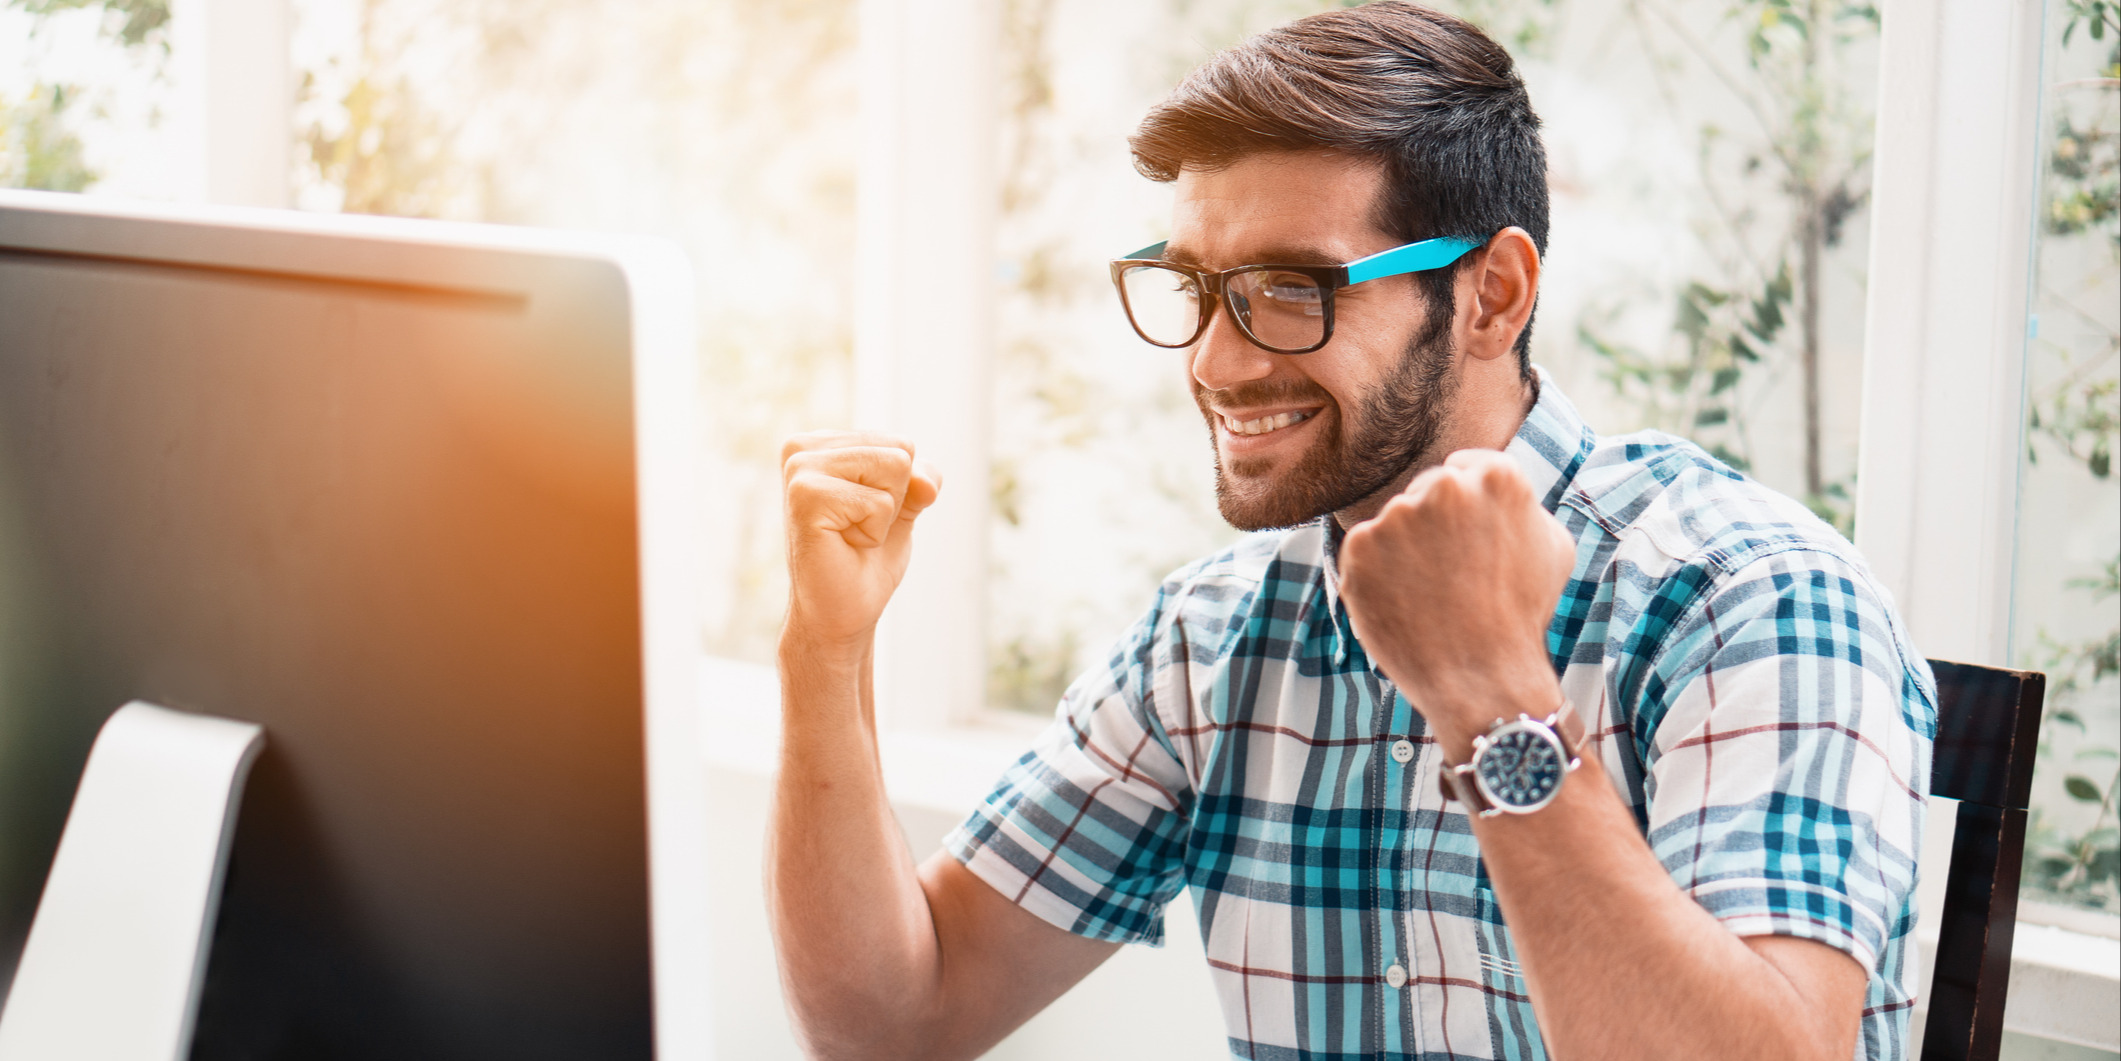 How to Keep Morale High While Working from Home